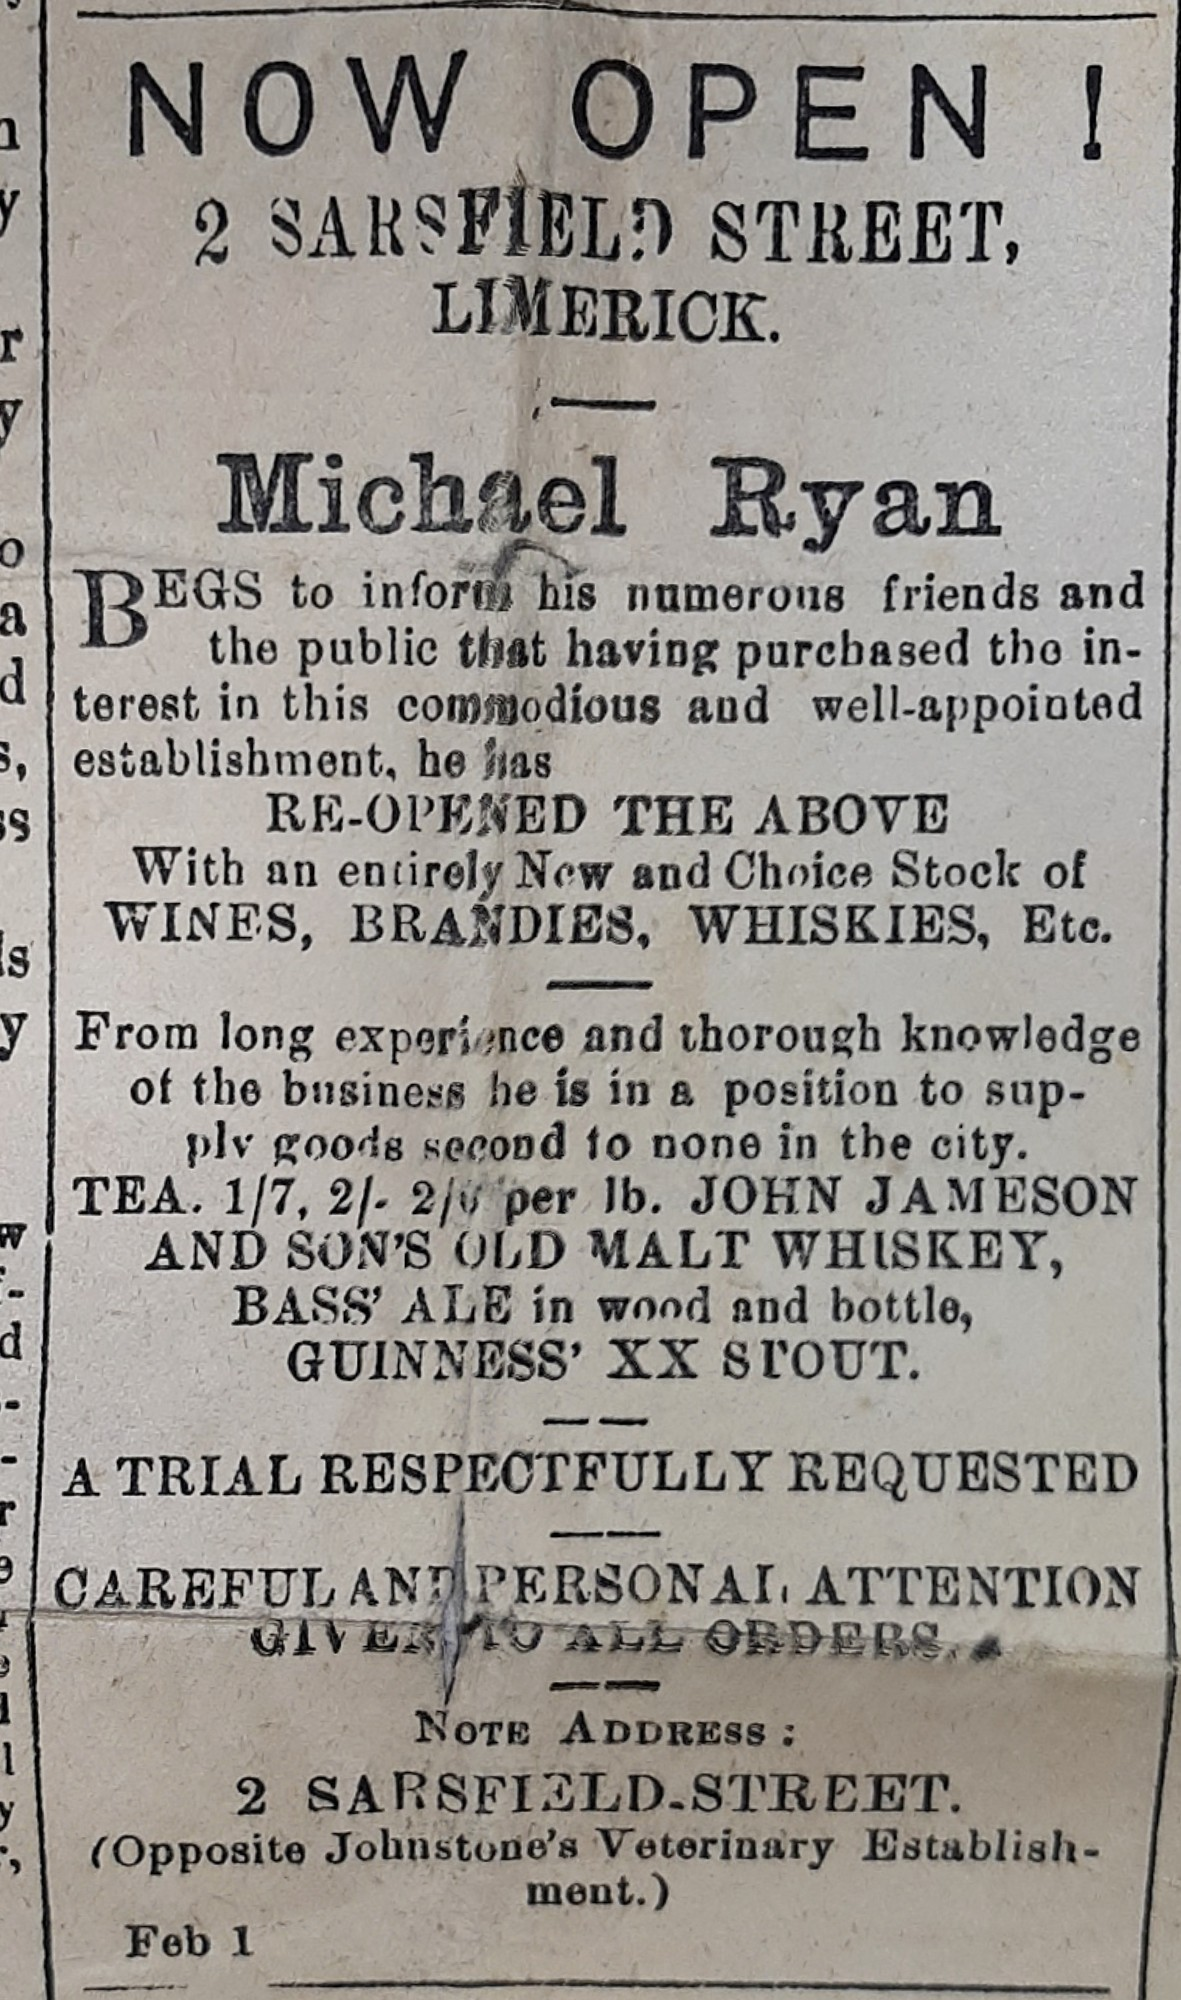 19th century newspaper ad—my great-grandfather opens his own business—February 1st, 1893